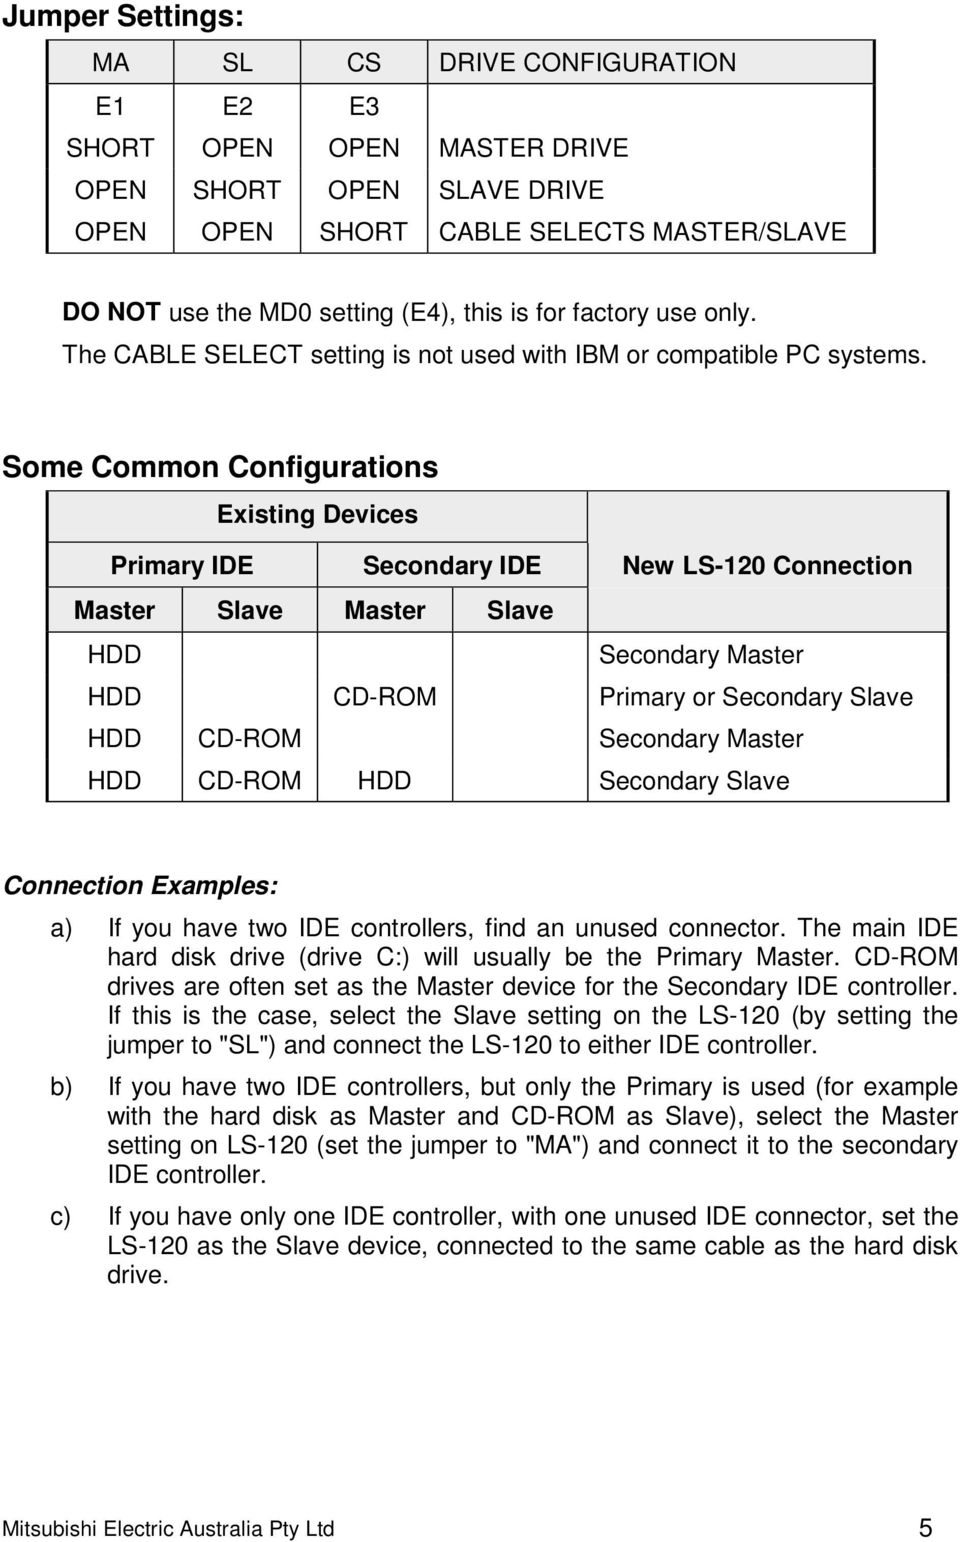 Mitsubishi Ls 120 High Capacity Flexible Disk Drive Model Mf357g Notebook Ide Interface Cdrom To Usb External Circuit Board Red Some Common Configurations Existing Devices Primary Secondary New Connection Master Slave